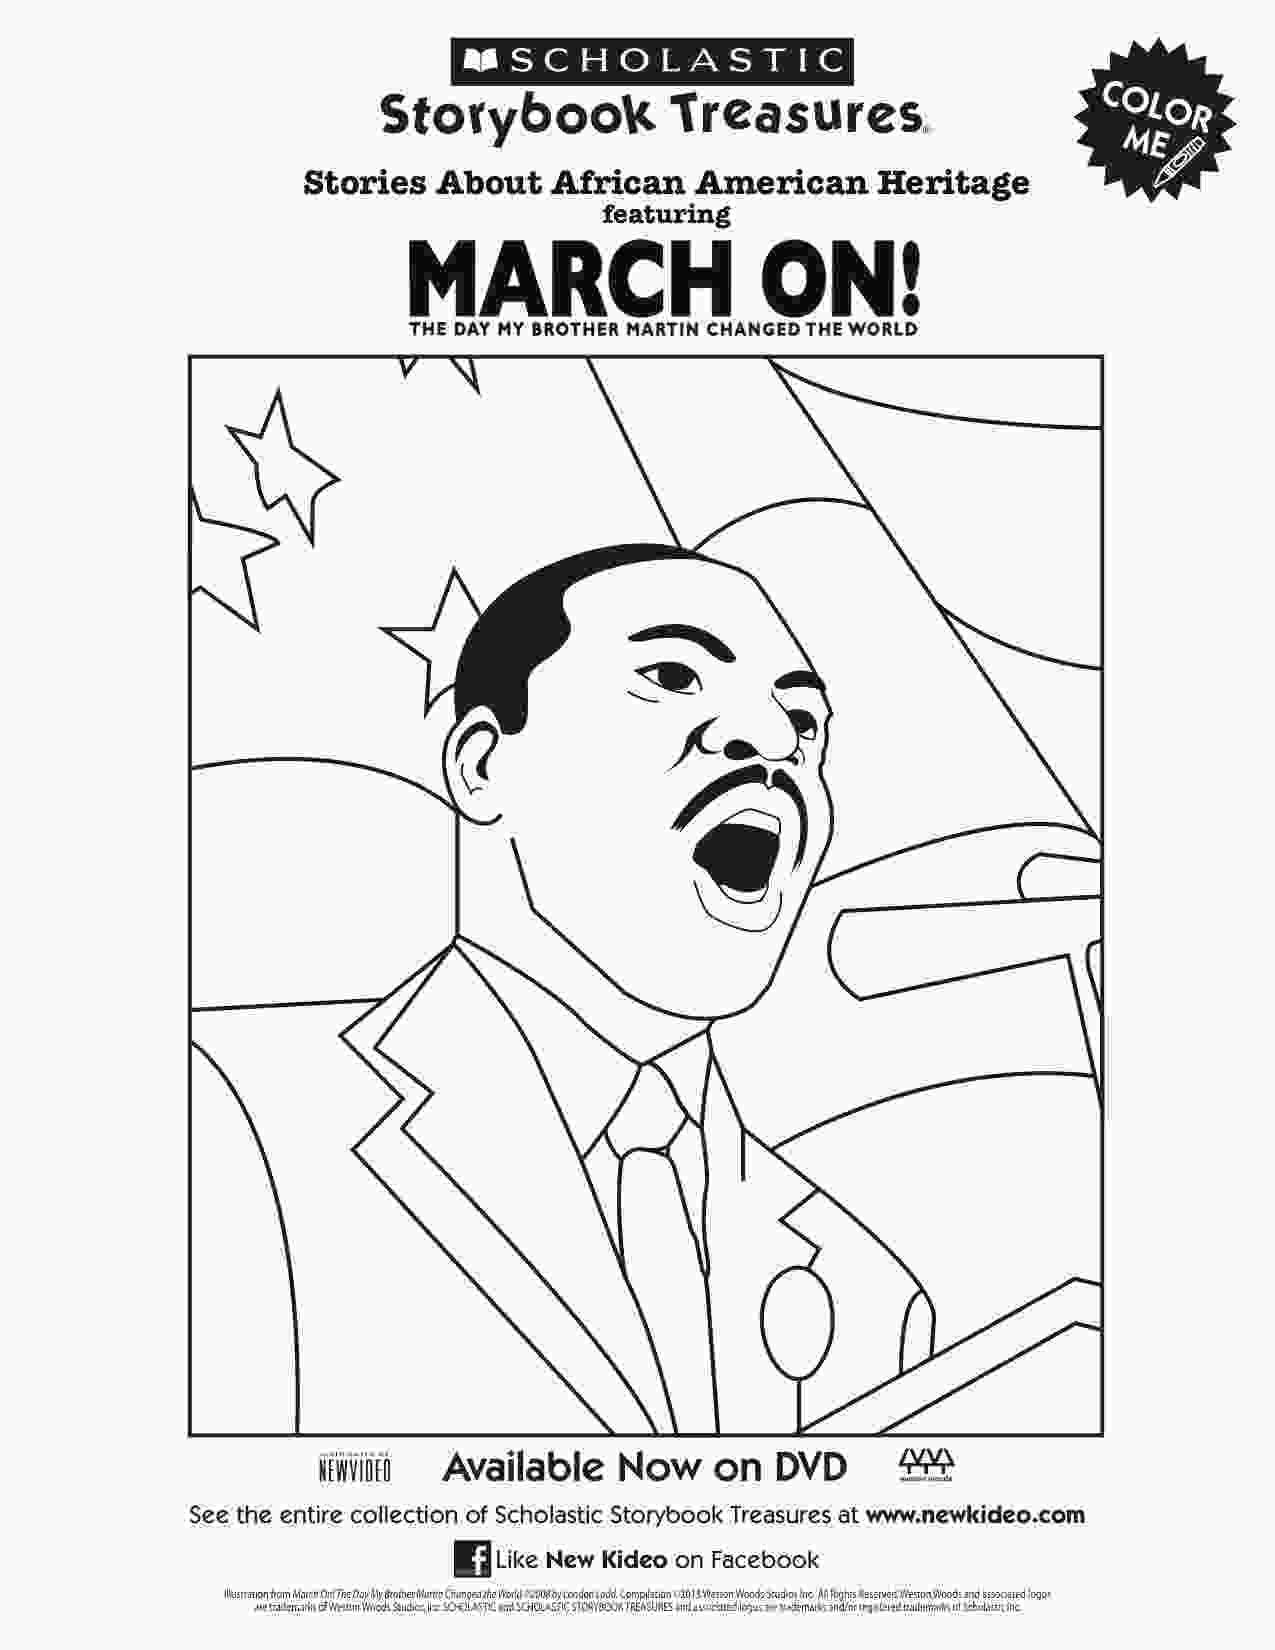 martin luther king jr coloring sheets martin luther king jr march on coloring page printable